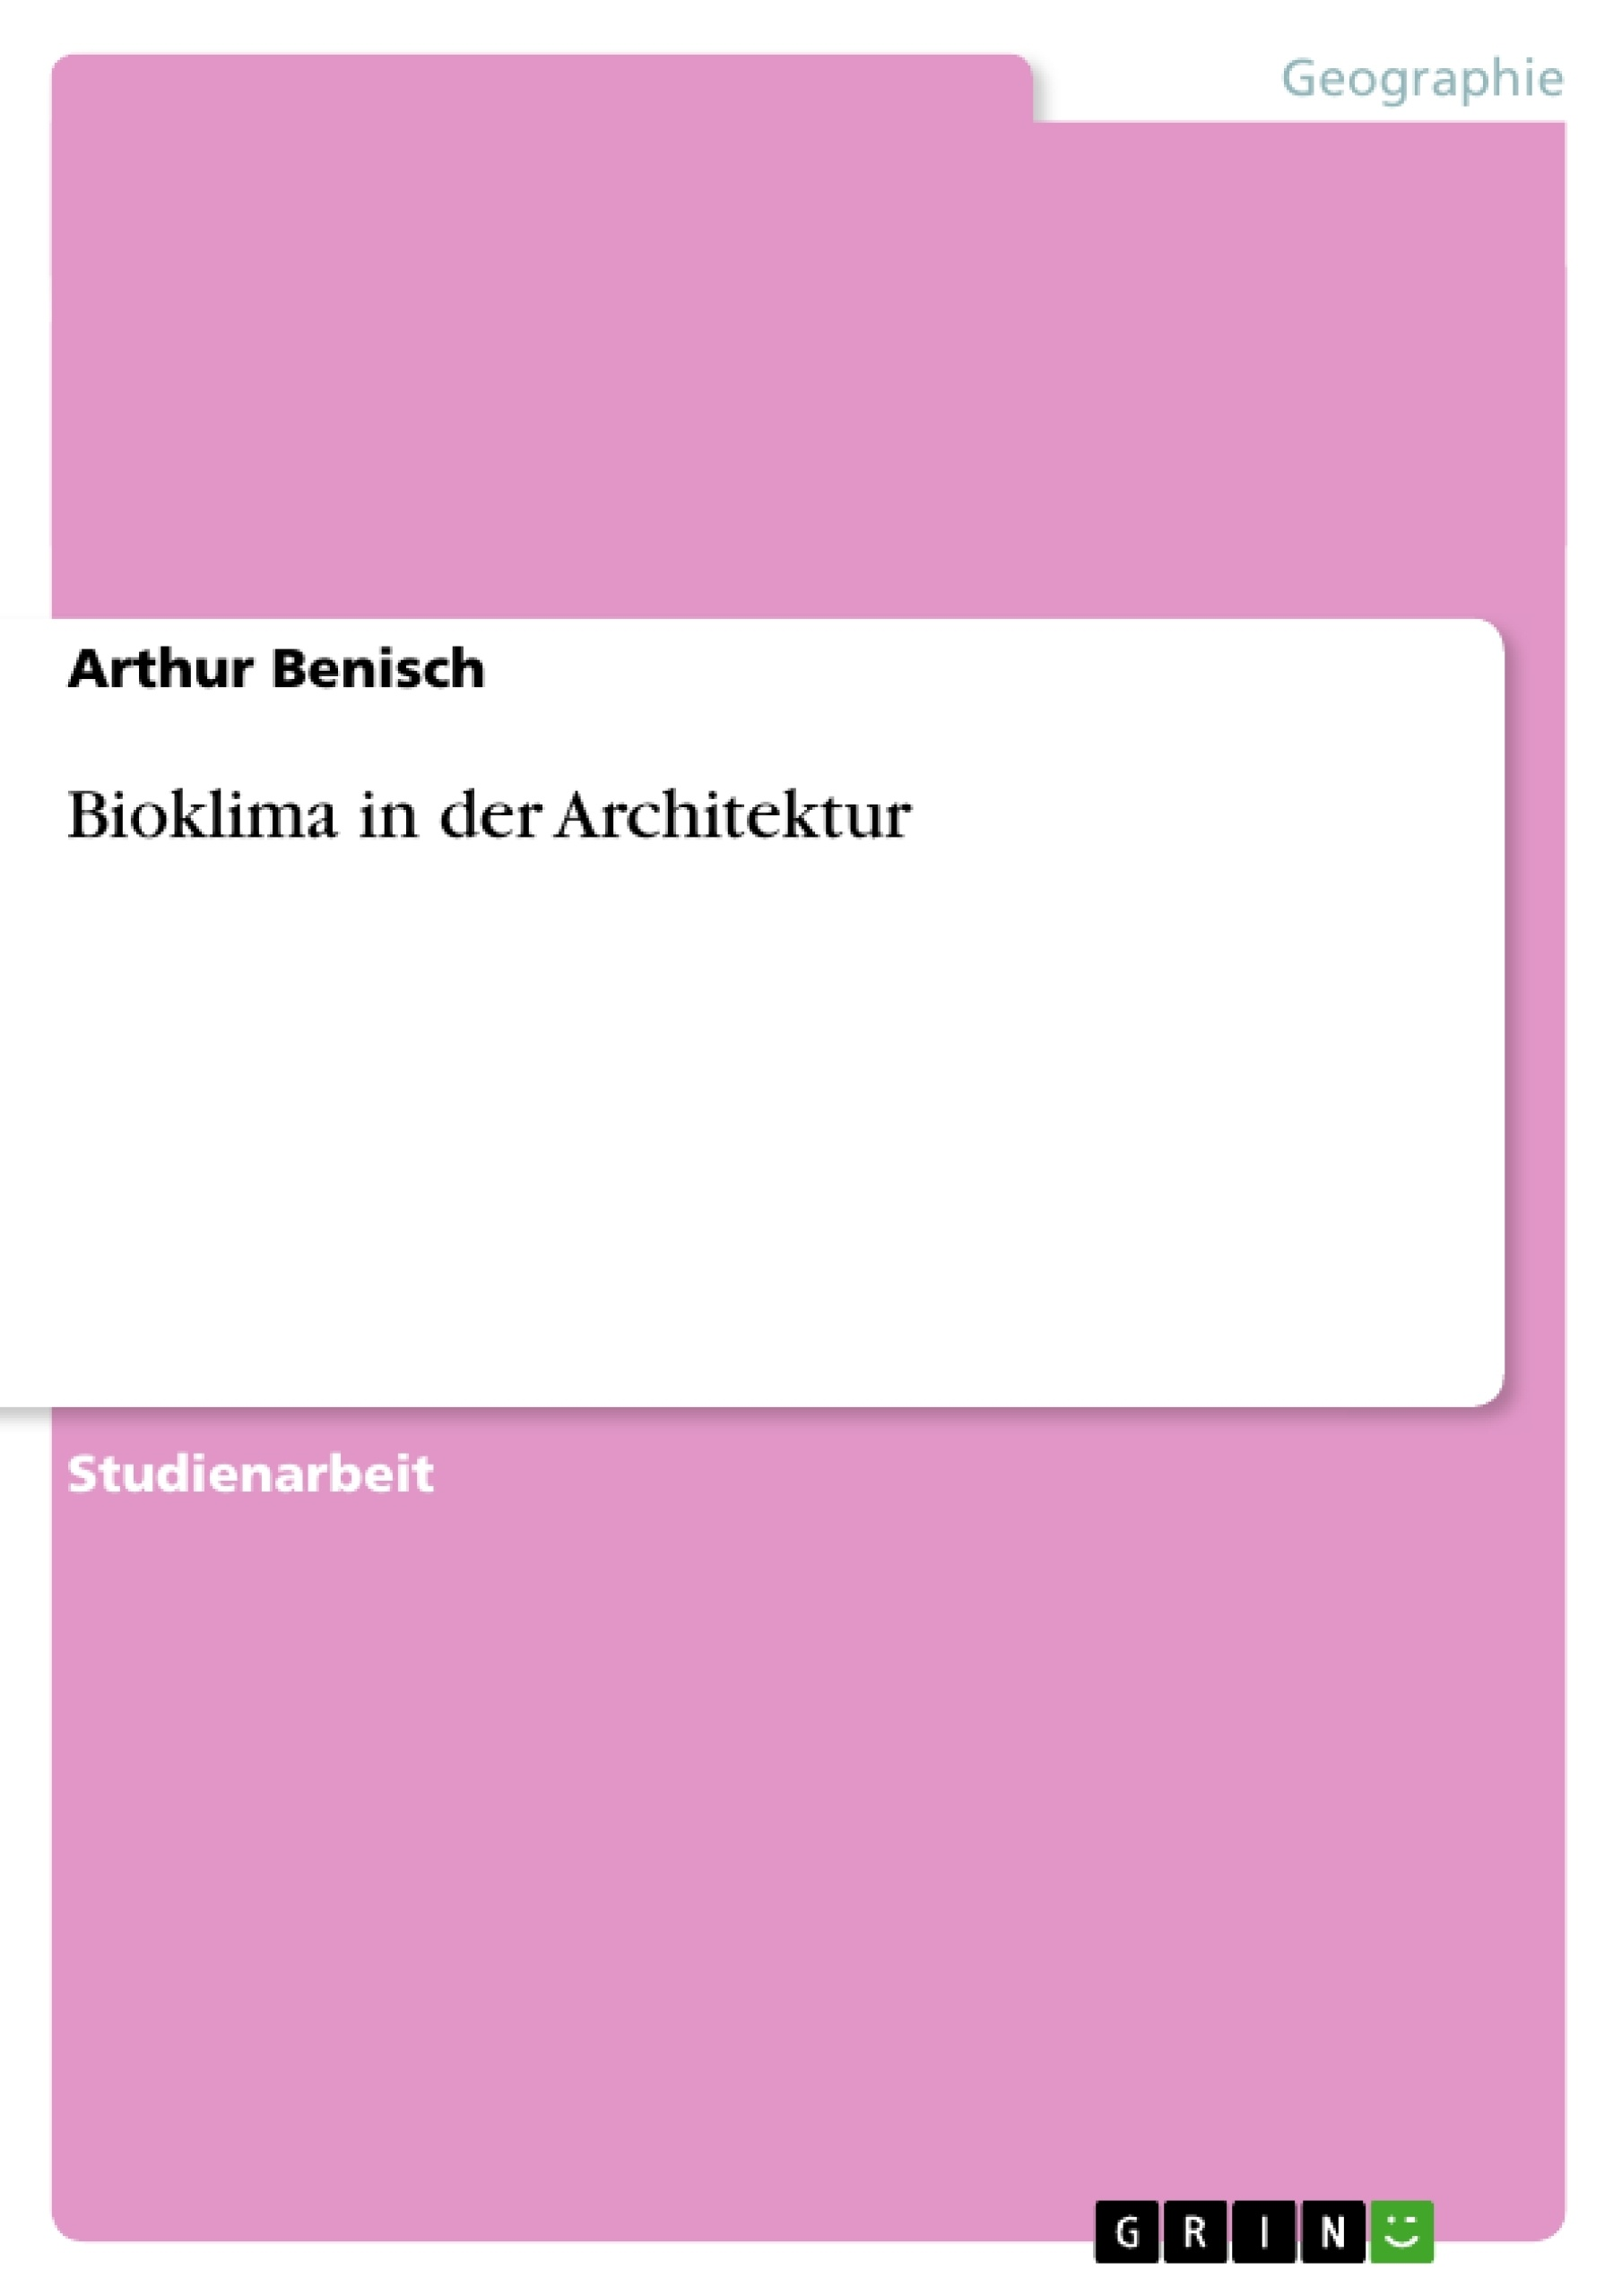 Titel: Bioklima in der Architektur